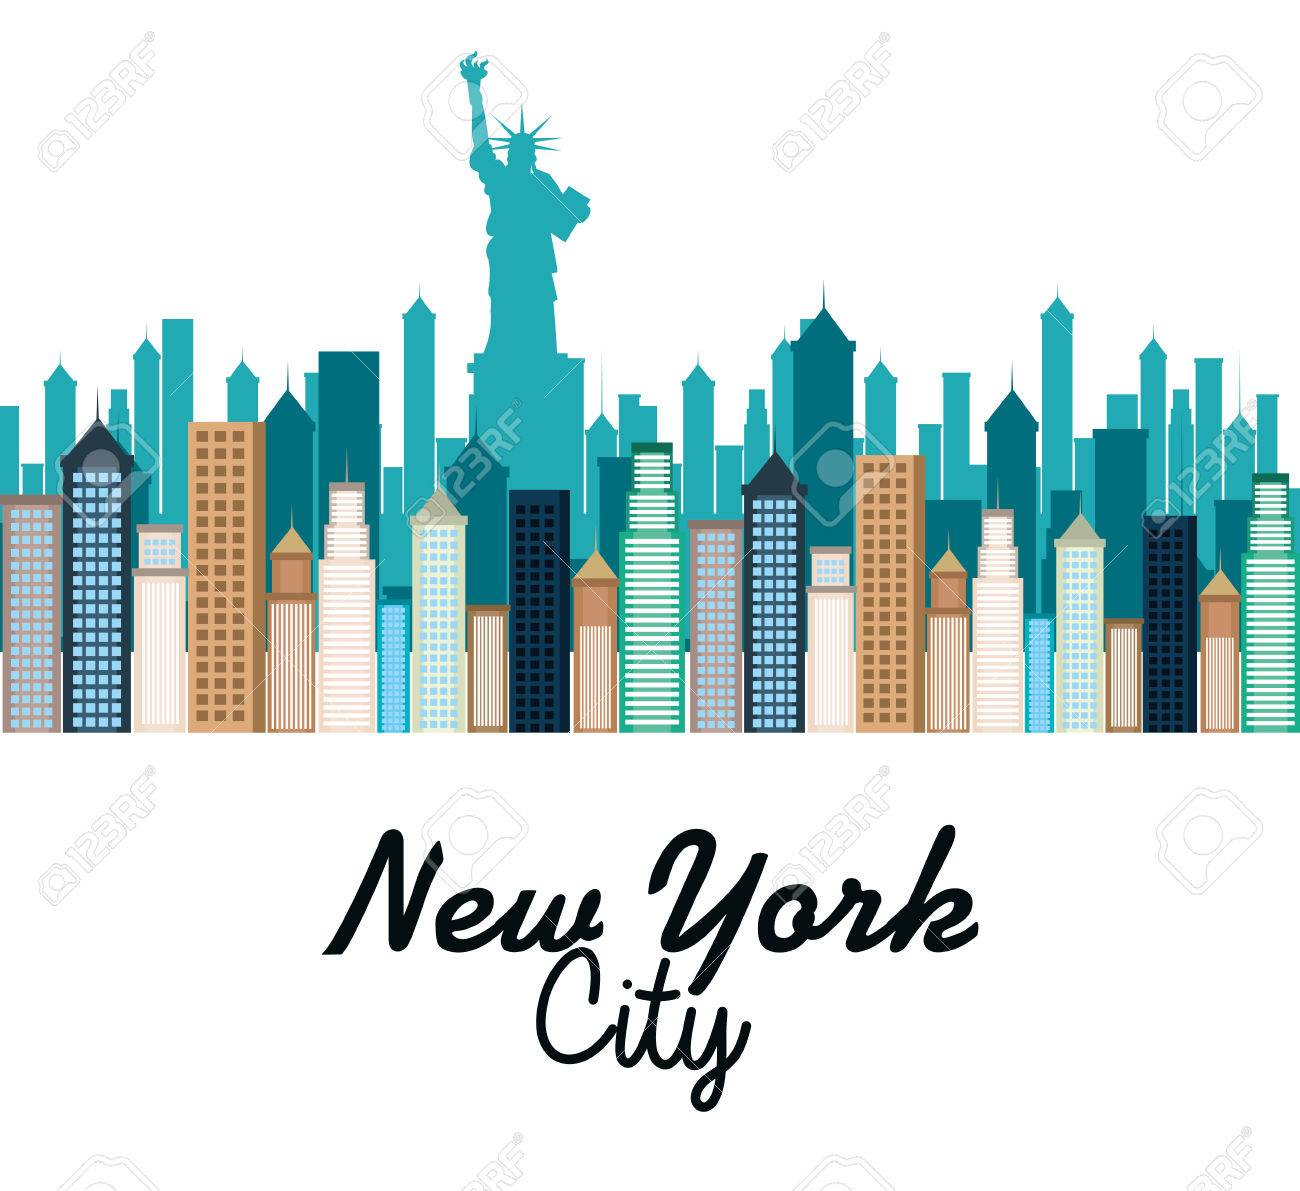 new york city cityscape vector illustration design royalty free rh 123rf com cityscape vector image free vector cityscape